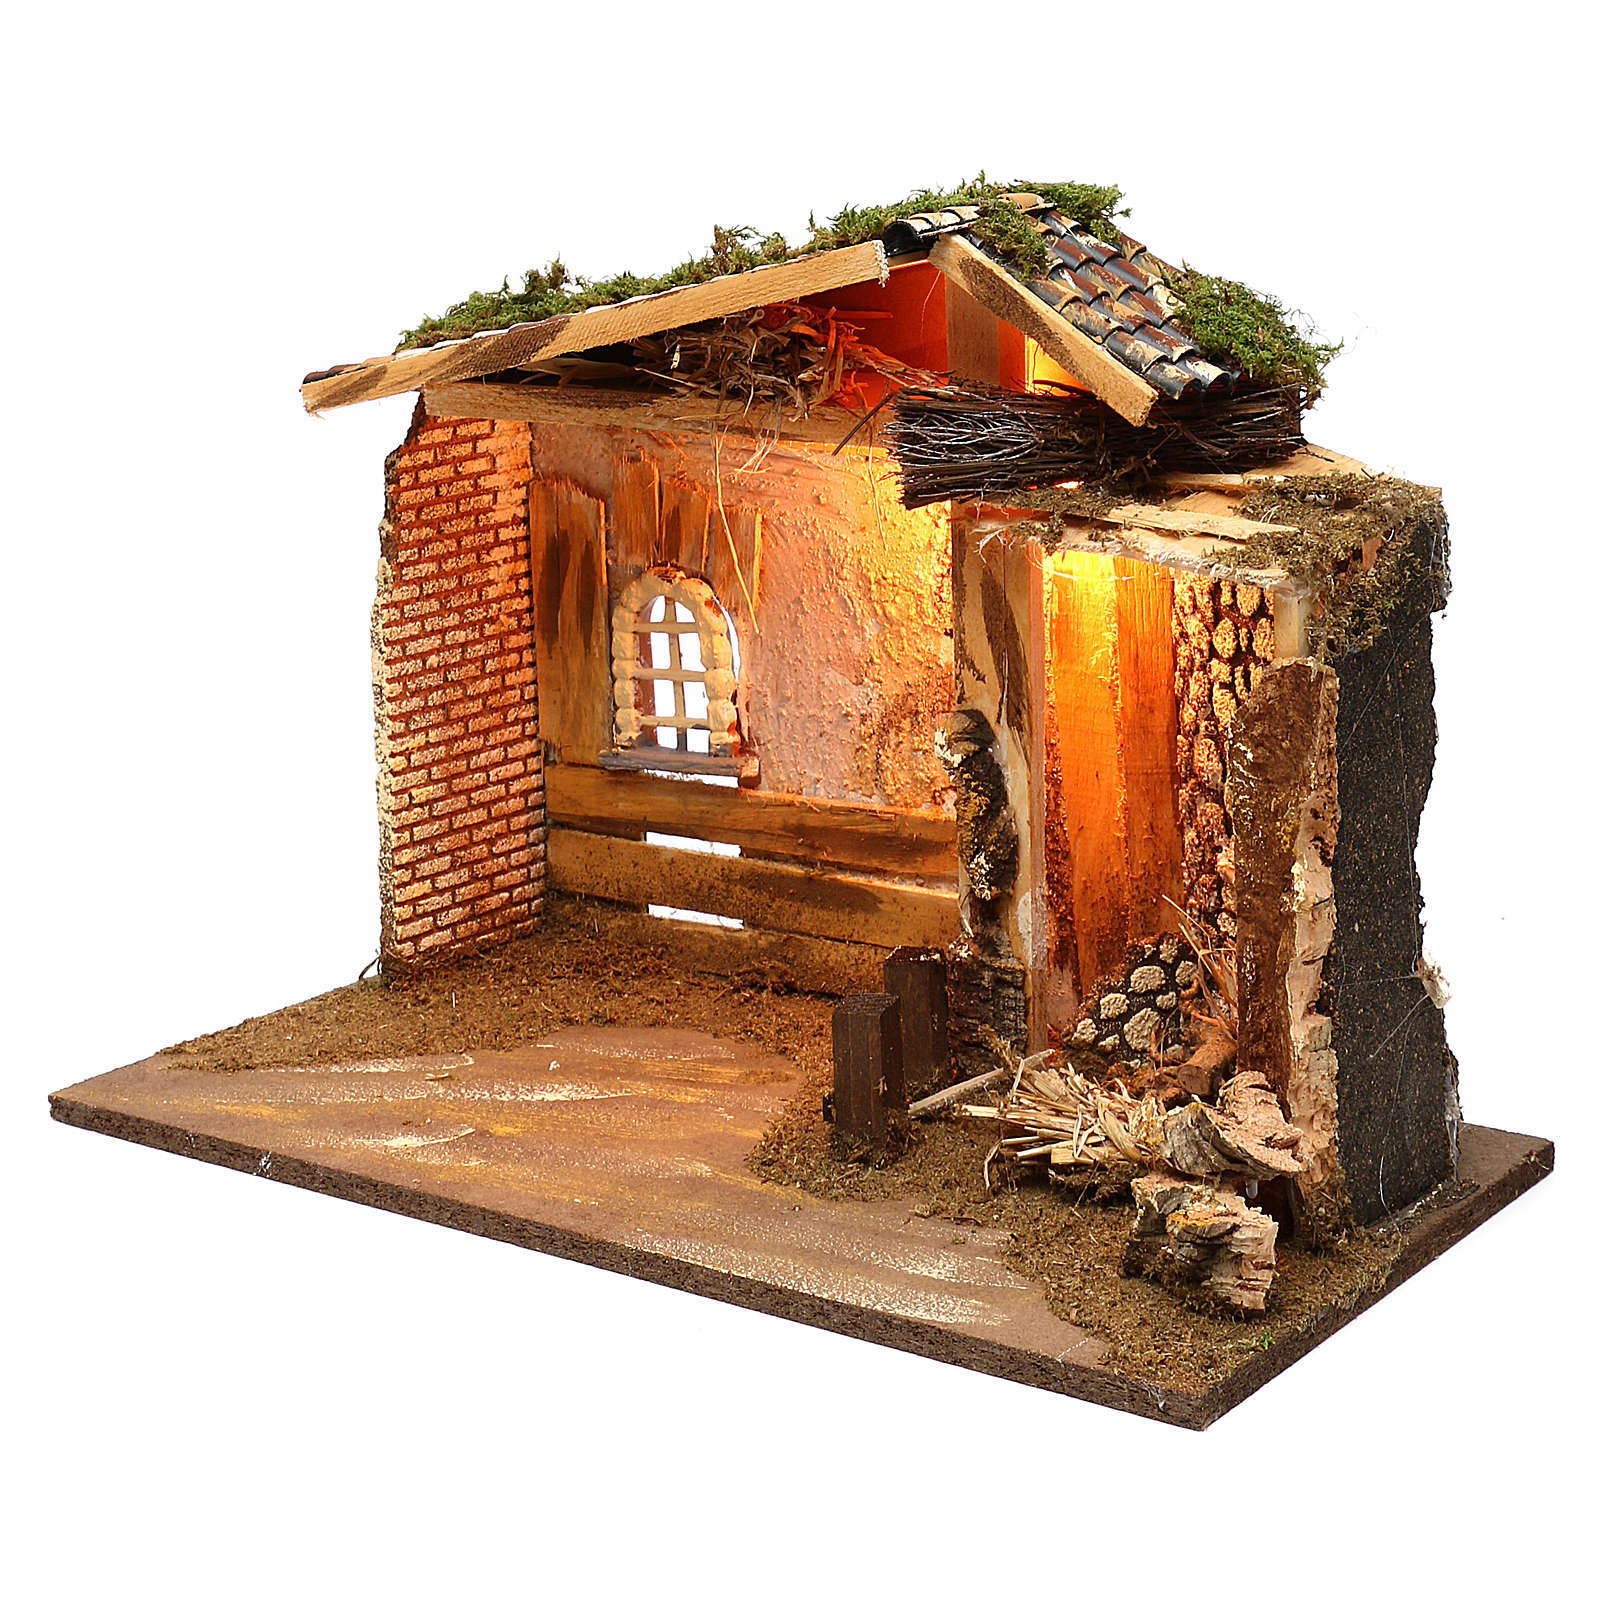 Illuminated hut with window and barn 35x50x25 cm 4